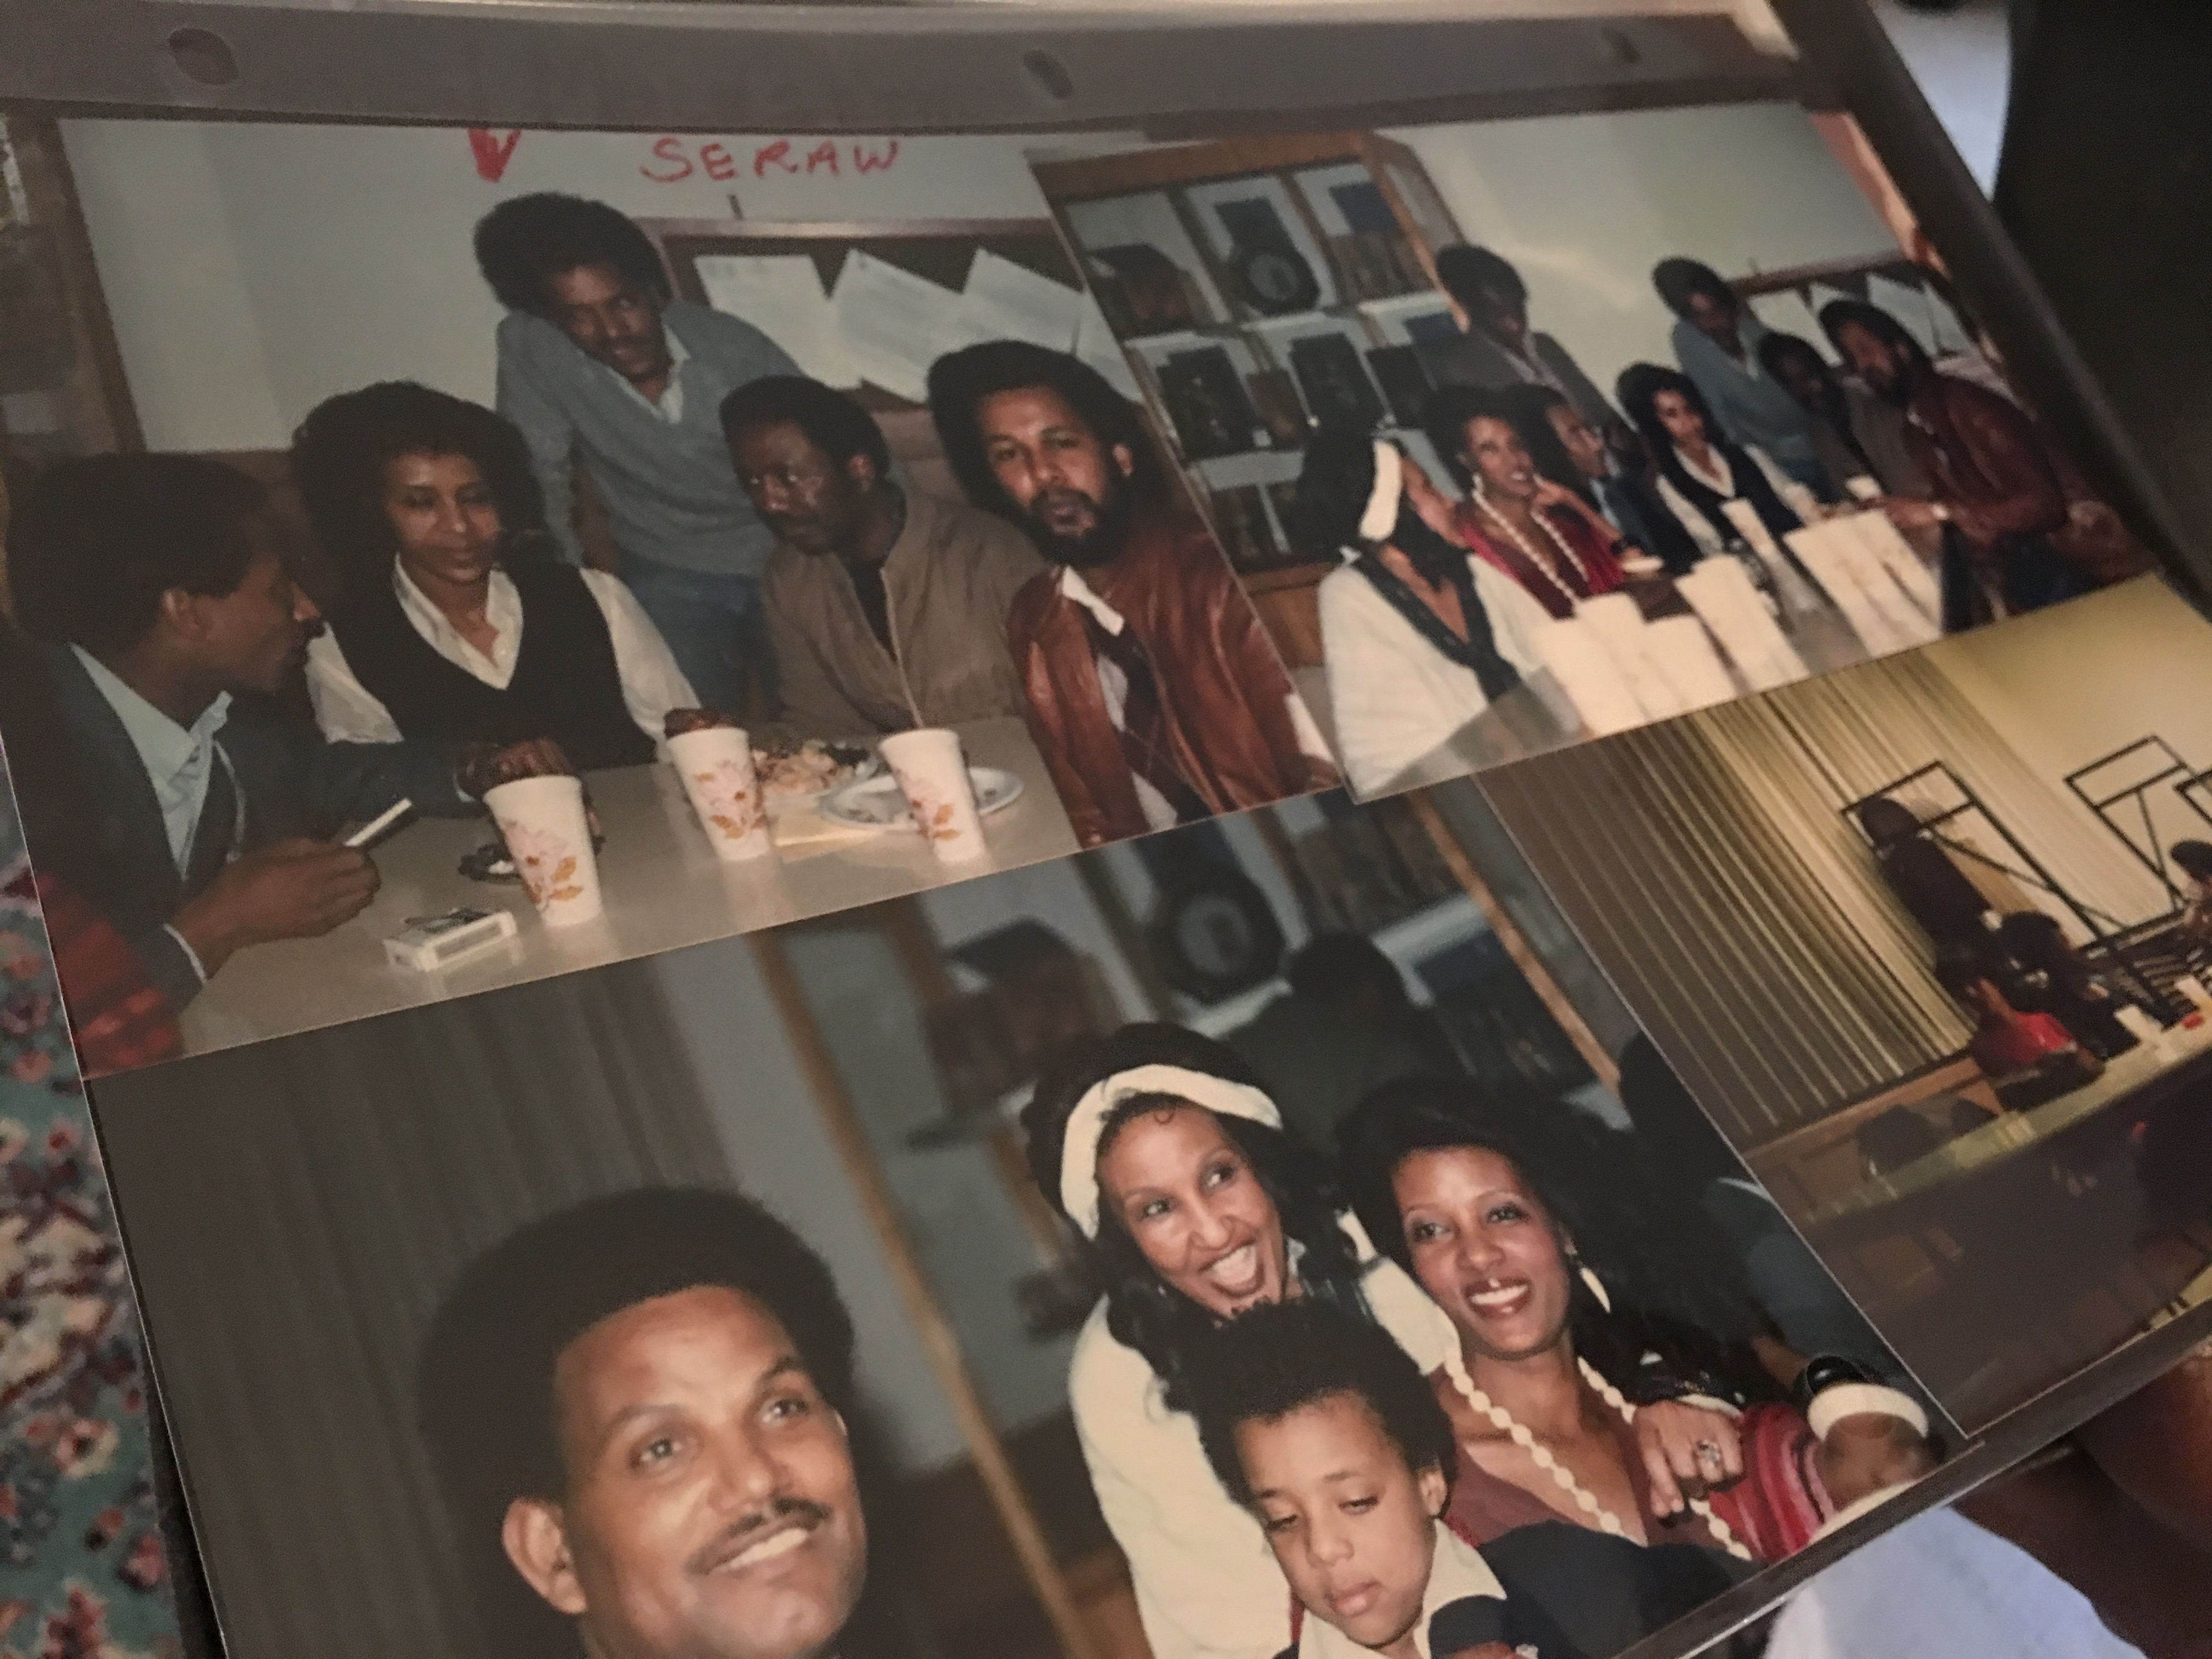 Endeyu Kendie holds pictures of the Portland Ethiopian community in the 1980s, including Mulugeta Seraw, a 28-year-old who became an integral part of the city's racial history.